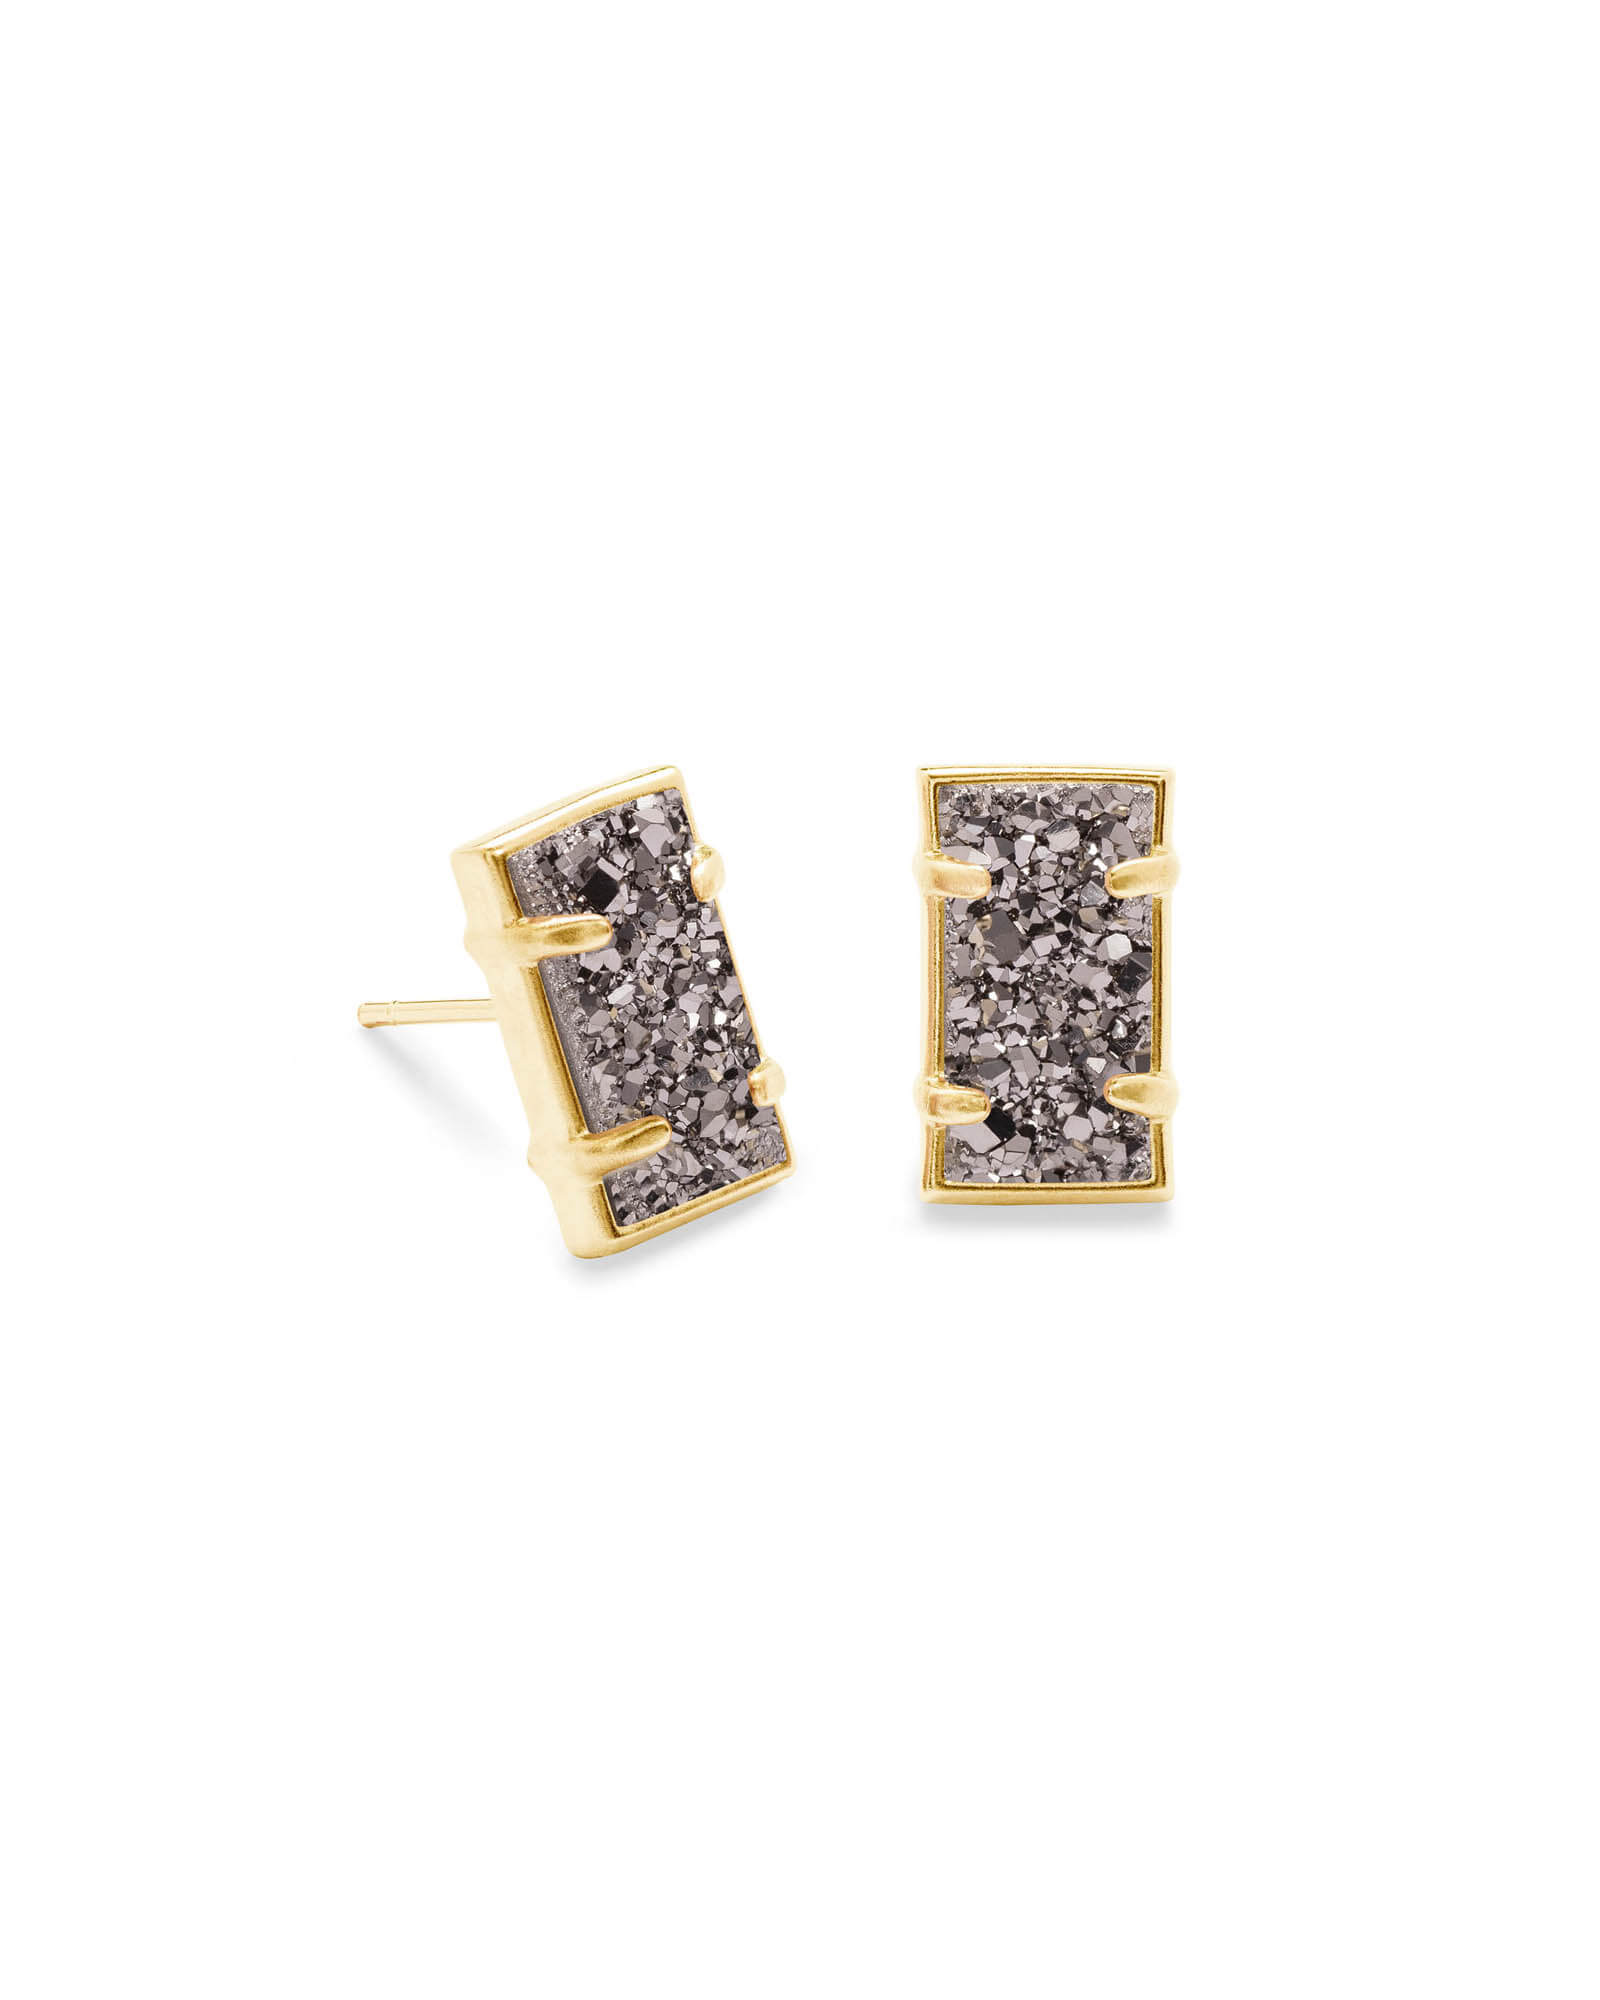 Paola Gold Stud Earrings in Platinum Drusy